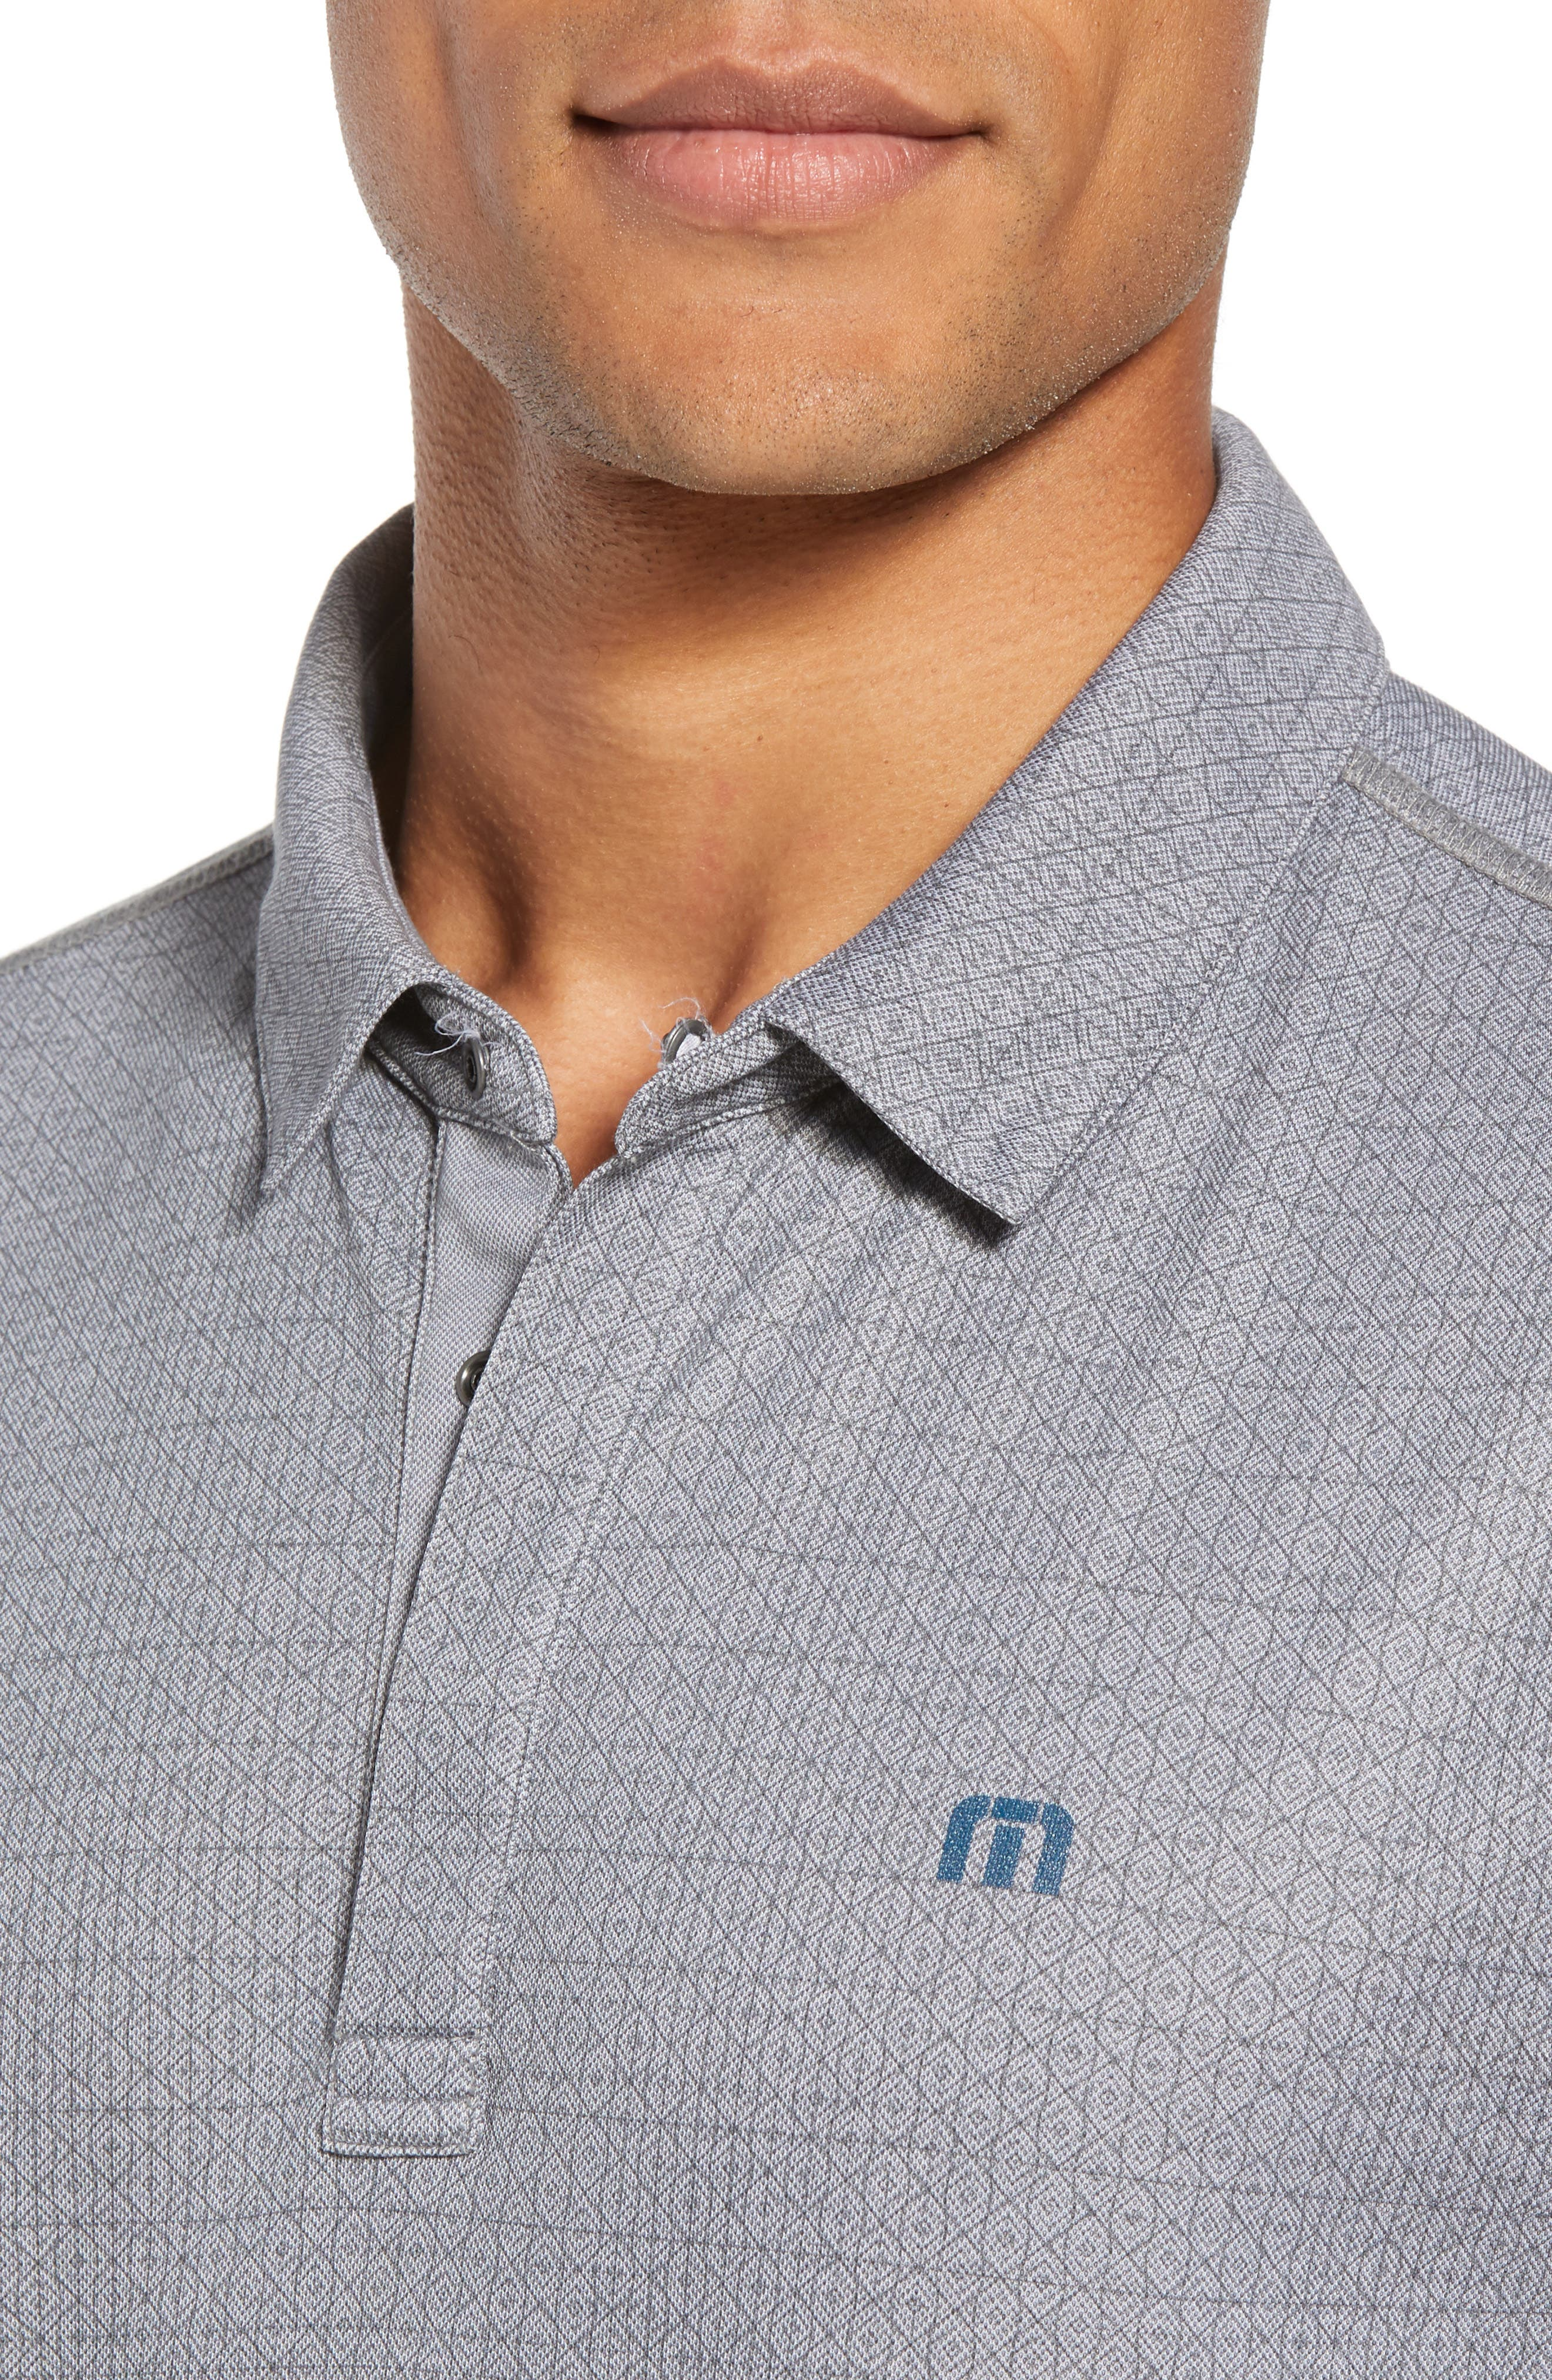 Reverse It Regular Fit Polo,                             Alternate thumbnail 4, color,                             HEATHER QUIET SHADE